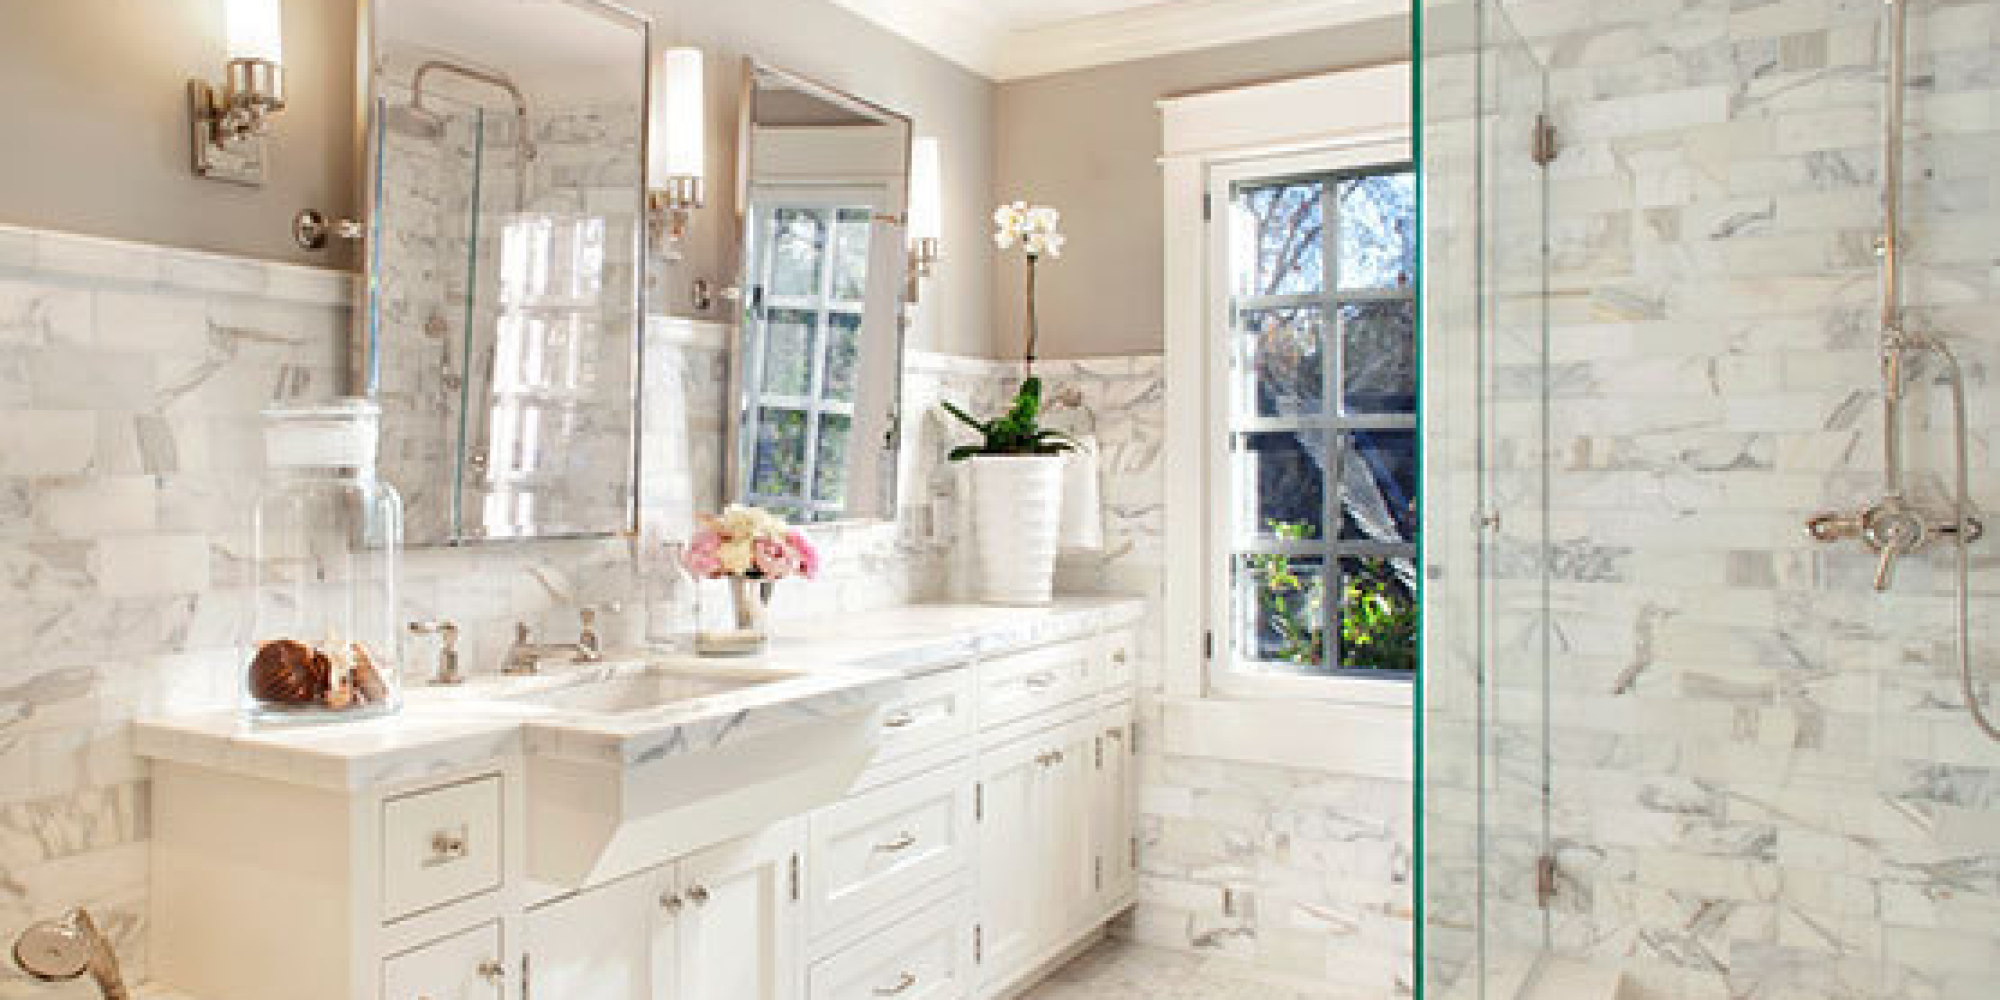 Luxury Marble Bathrooms 7 marble bathrooms that redefine luxury | huffpost